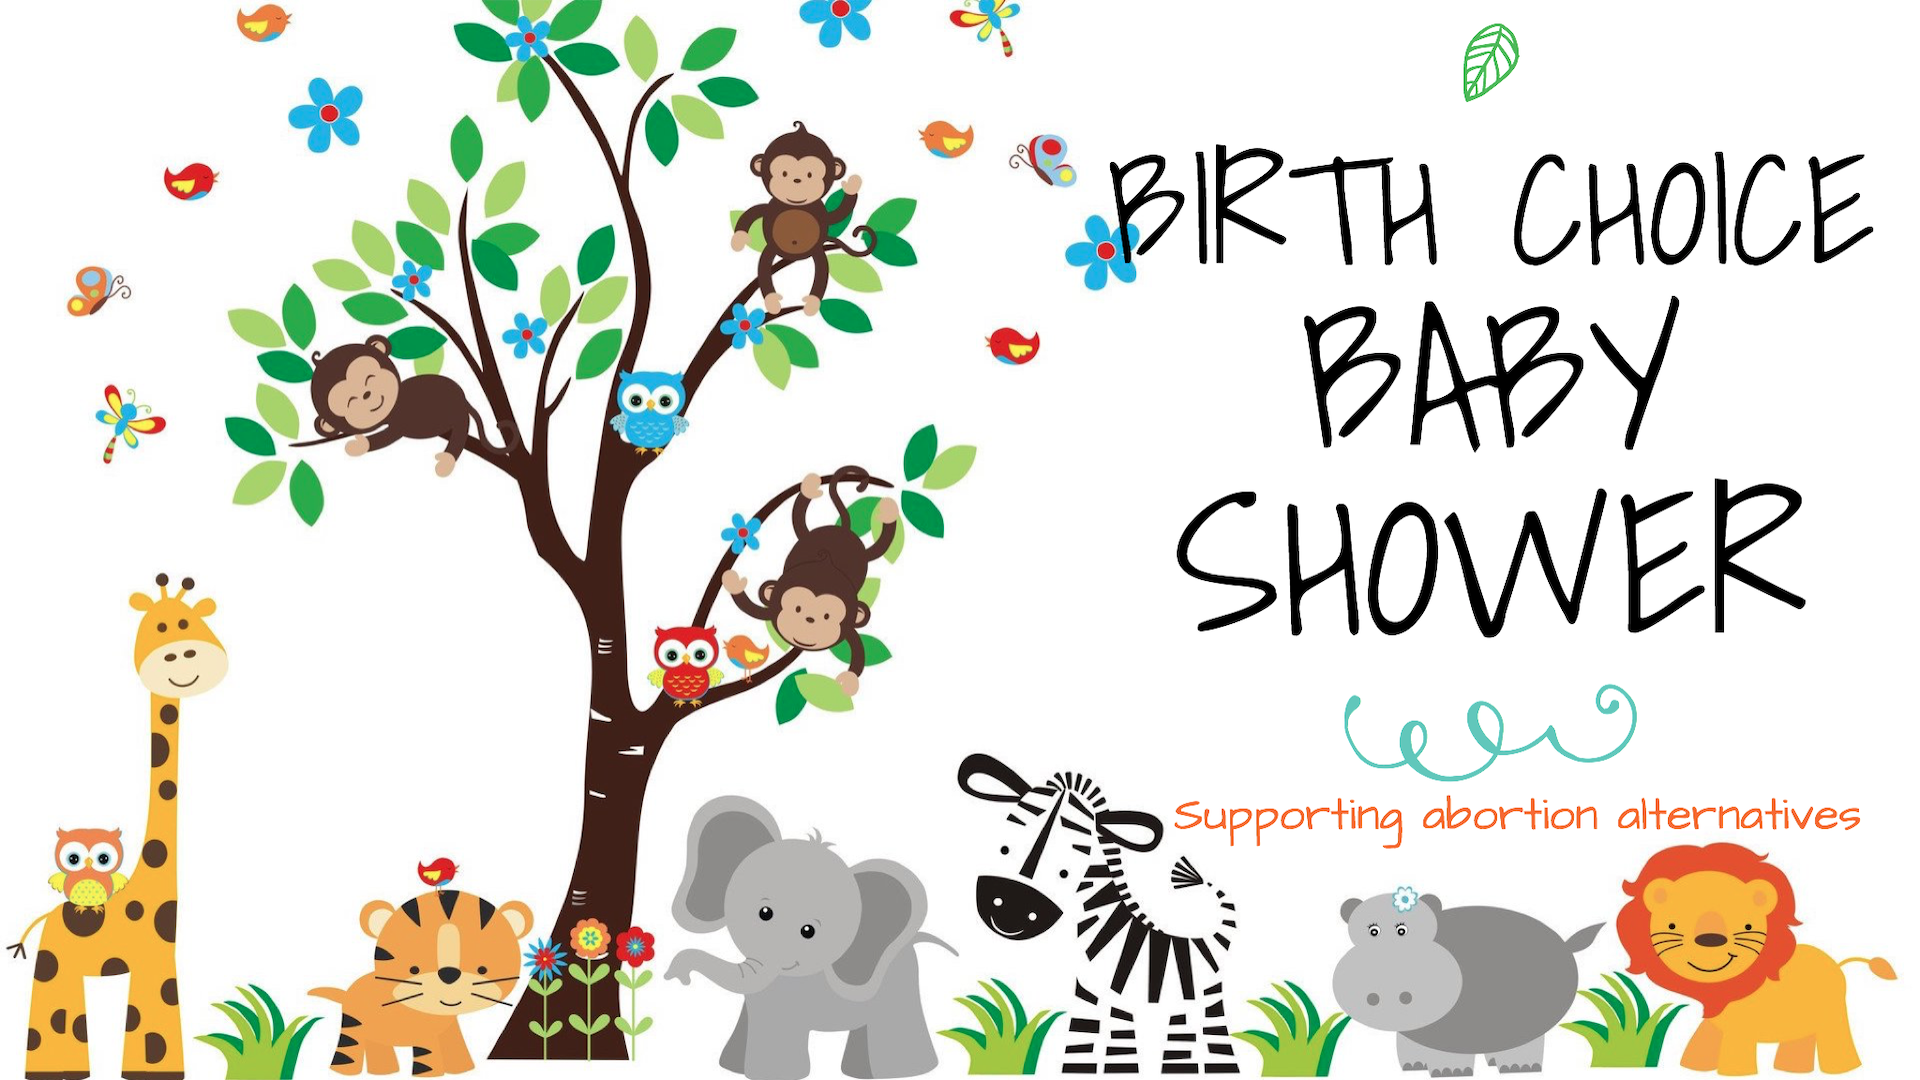 Promo - Birth Choice Baby Shower.png